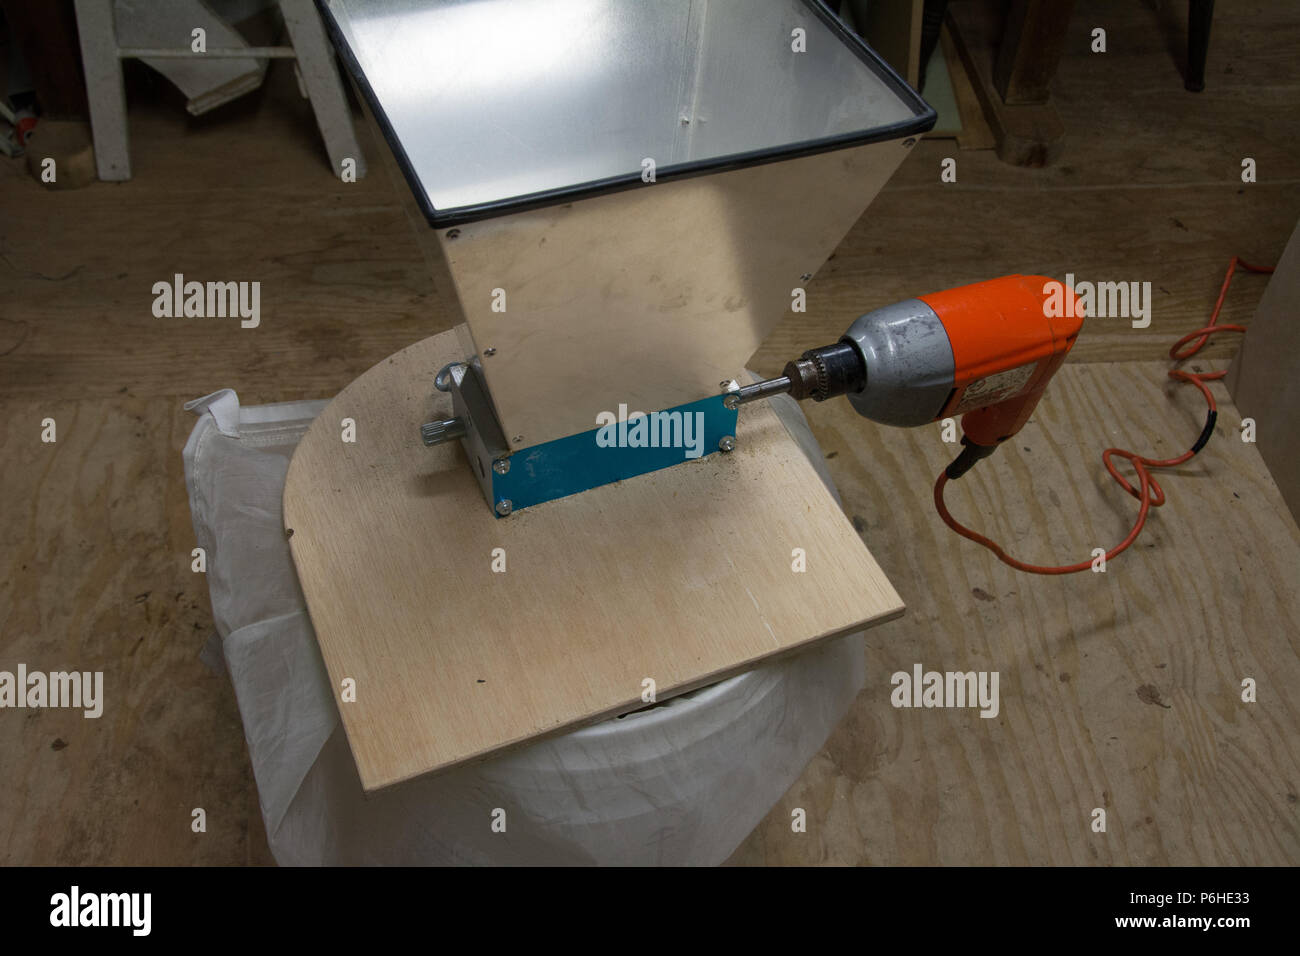 An amateur grain mill setup with a power drill to turn the grinding rollers - Stock Image